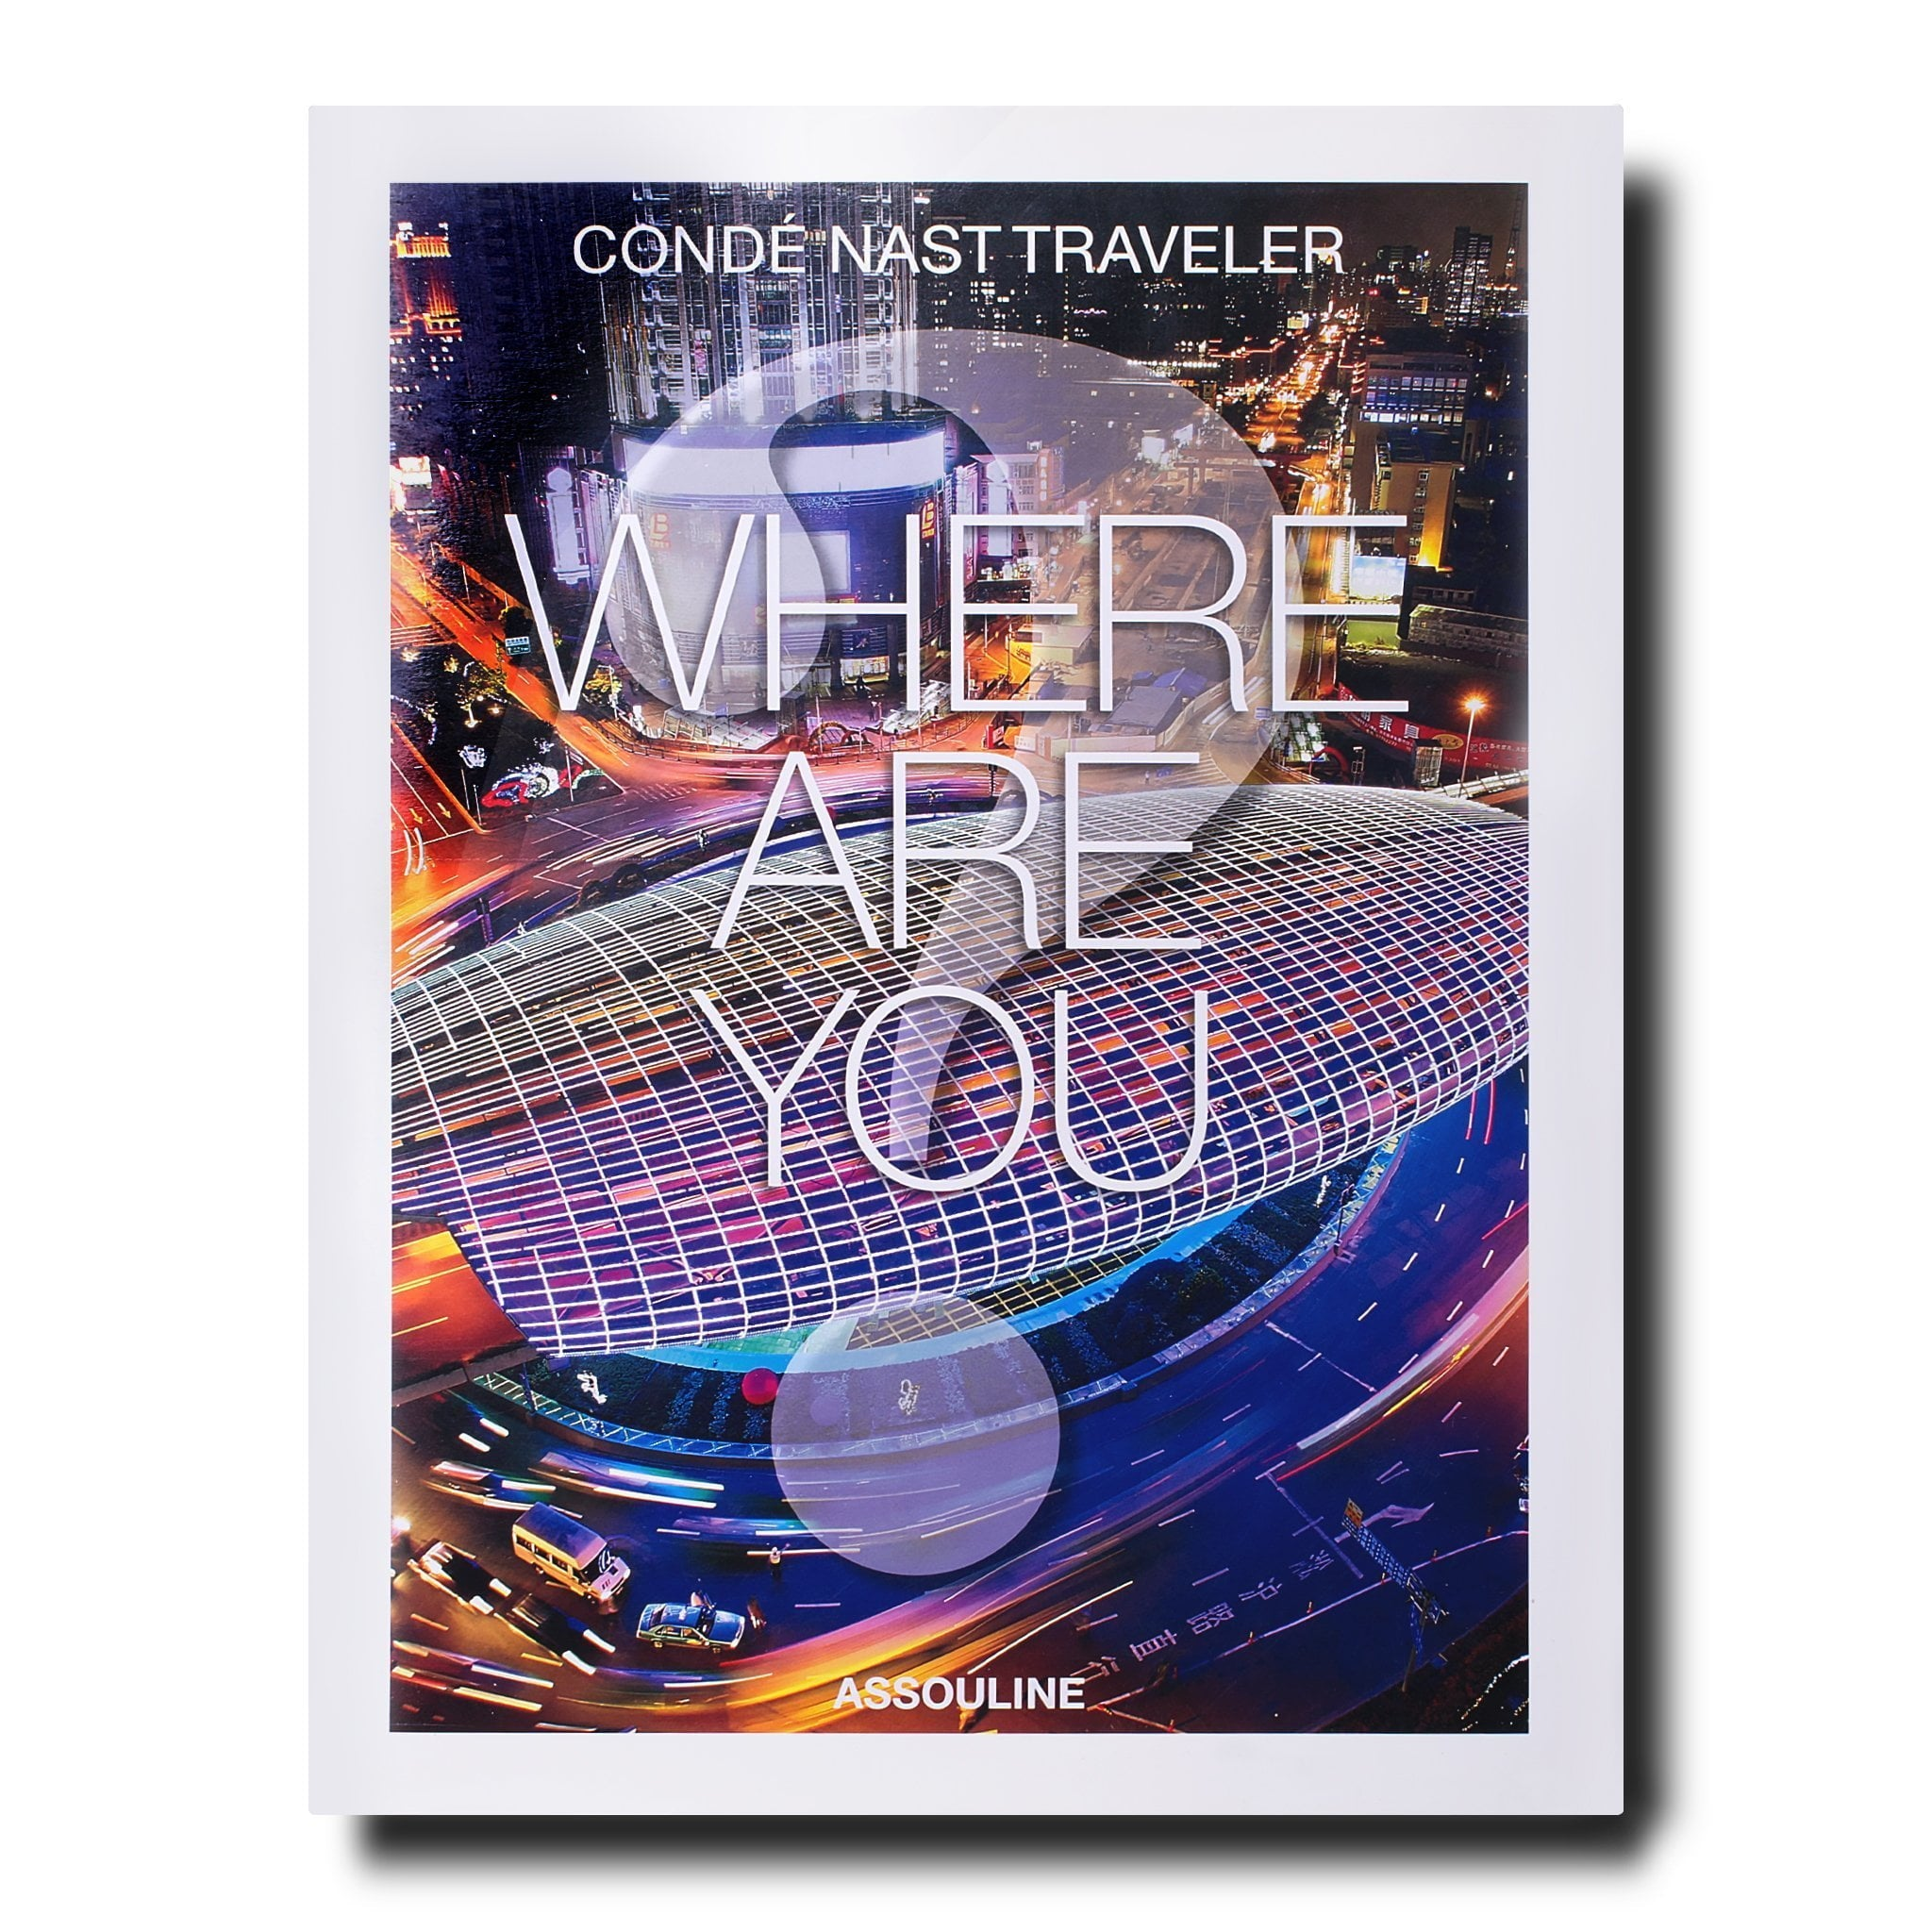 Conde Nast Traveler Where Are You? - Assouline